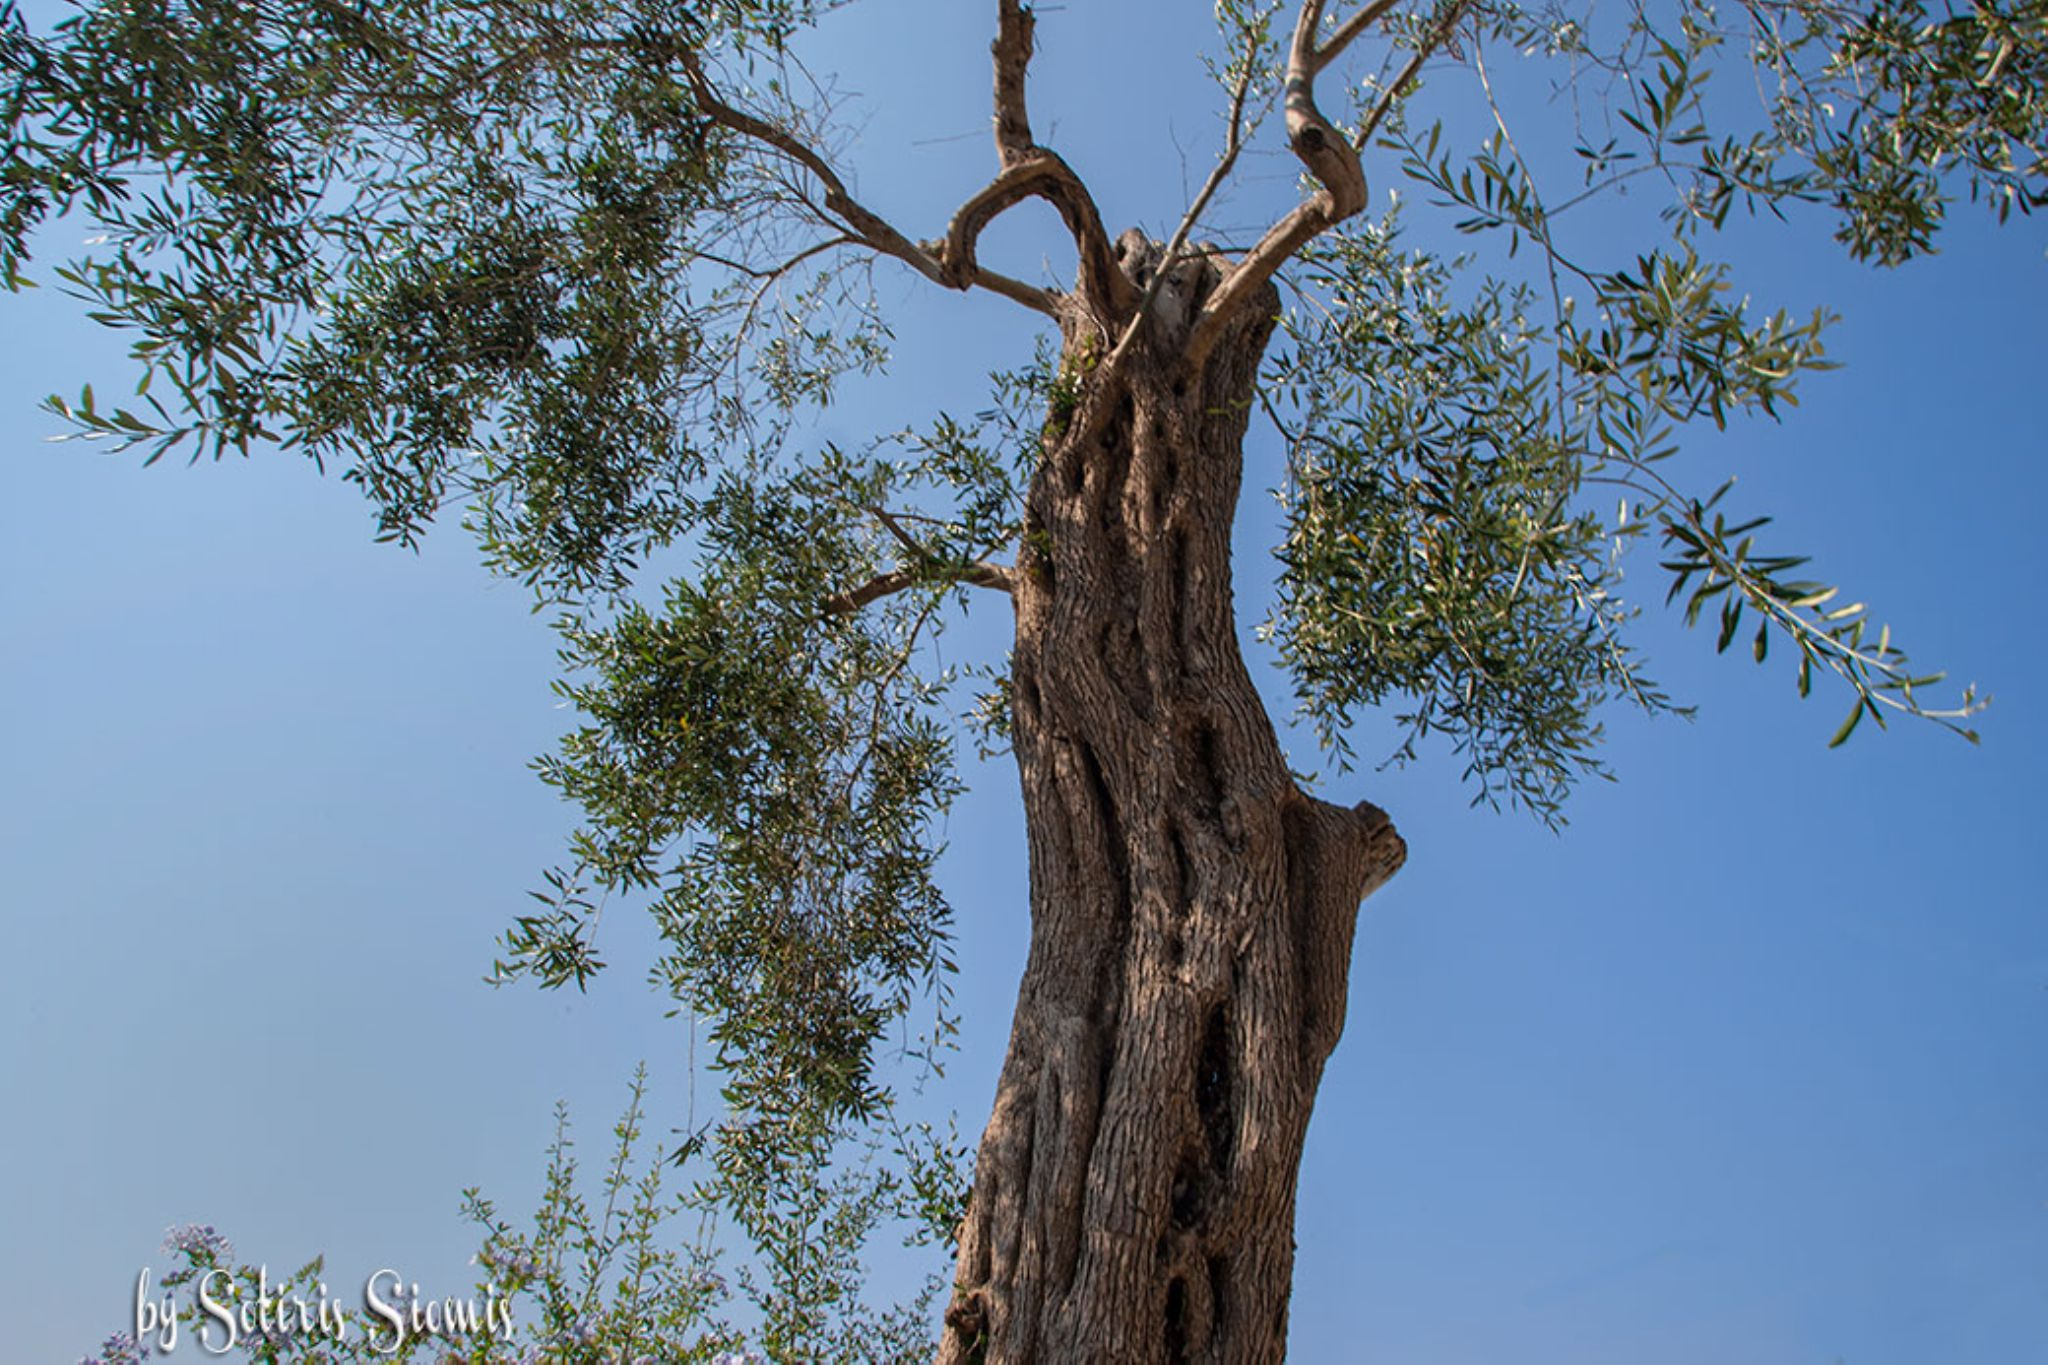 The sacred olive tree  by Sotiris Siomis